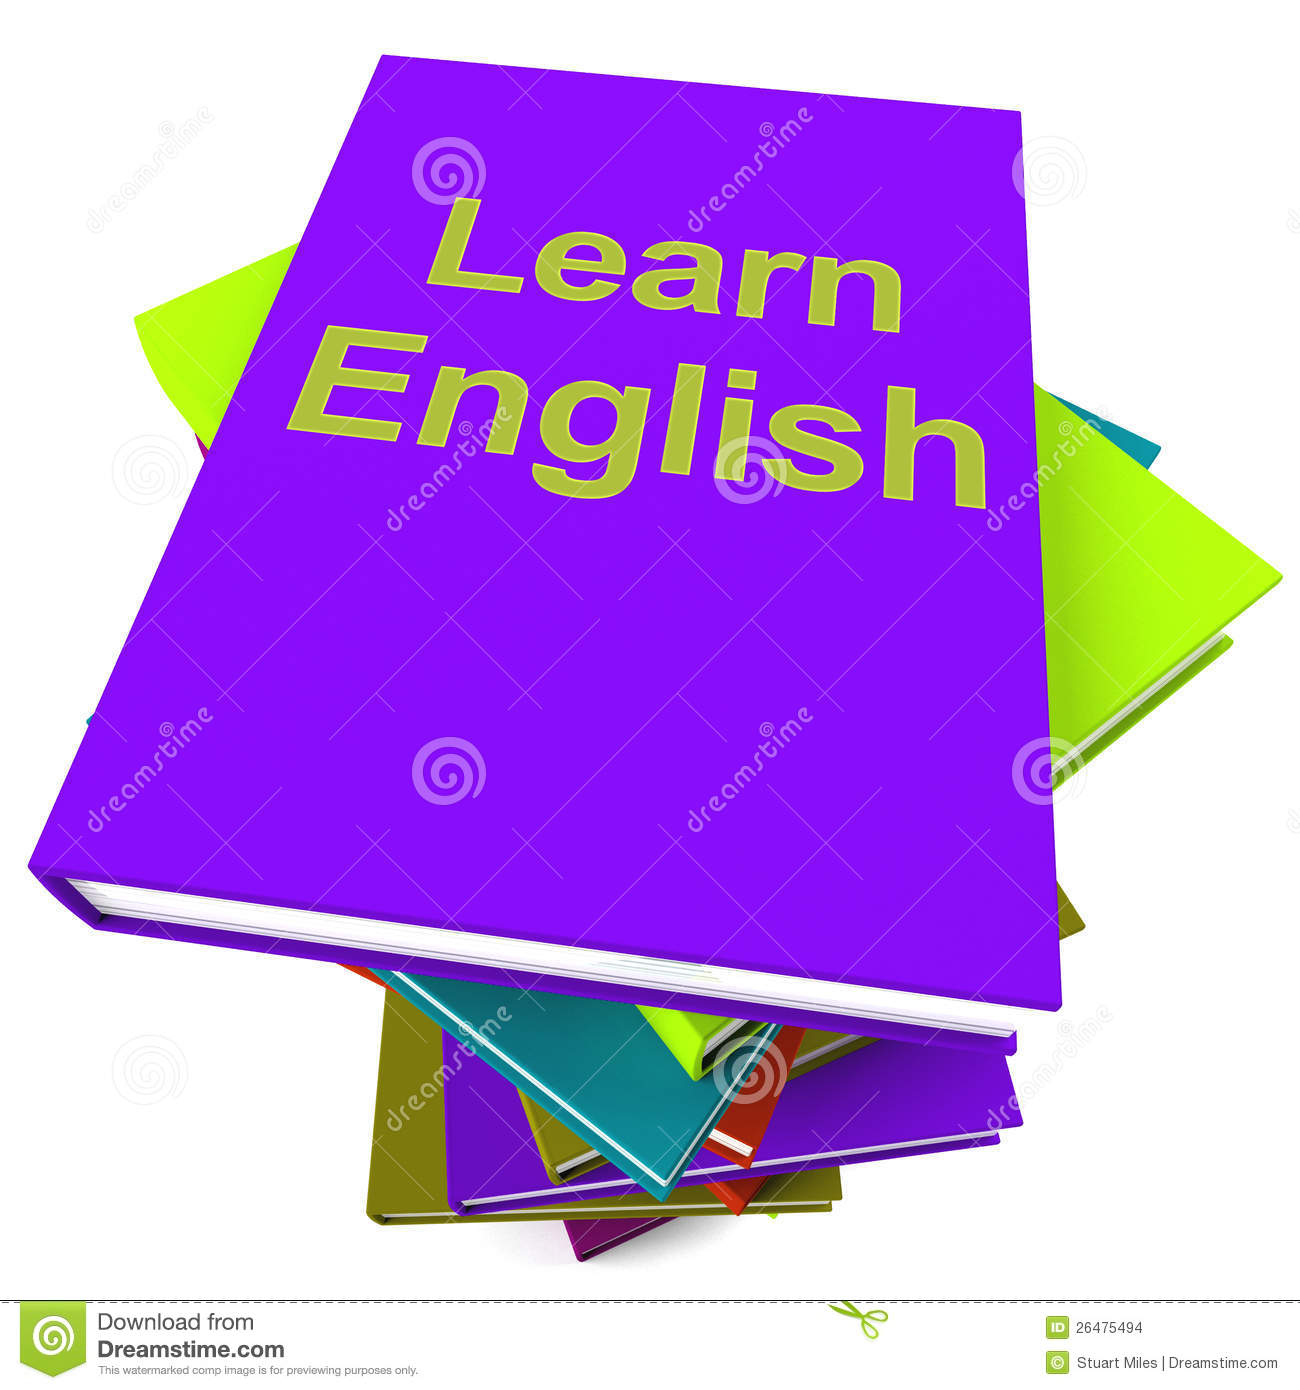 Learn English Book For Studying A Language Stock Images - Image ...